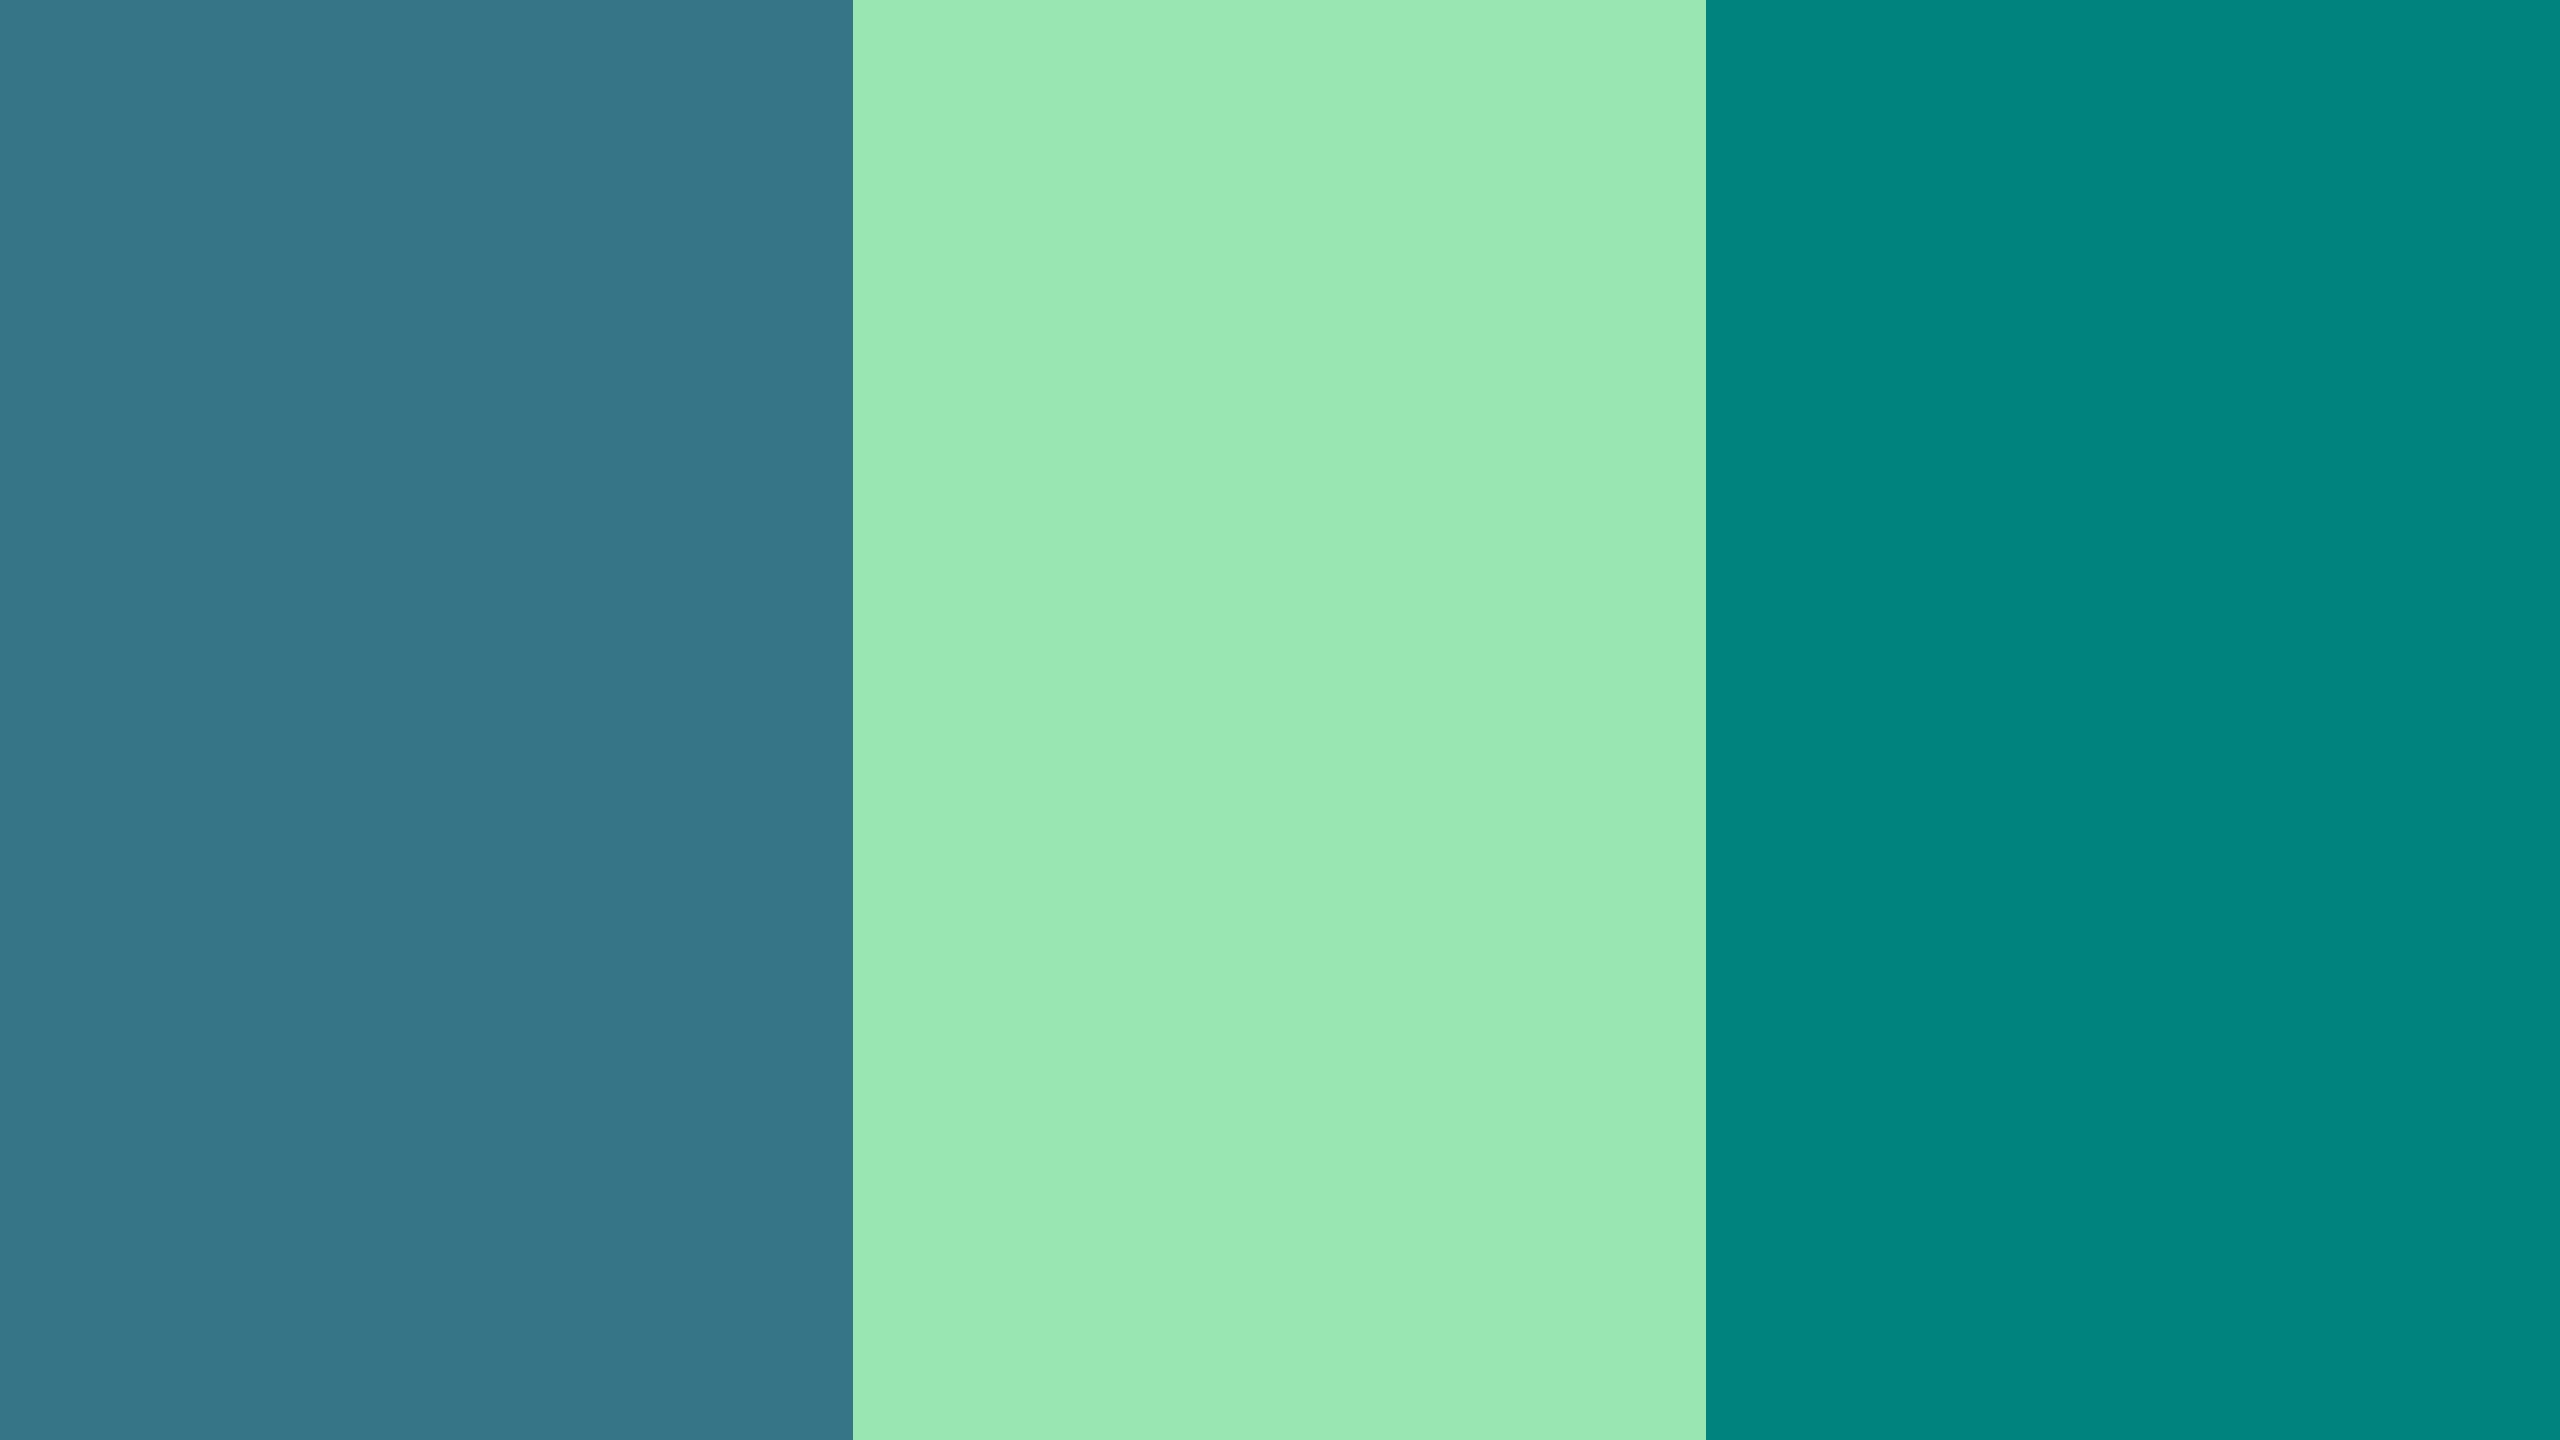 2560x1440 Teal Blue Teal Deer and Teal Green Three Color Background 2560x1440